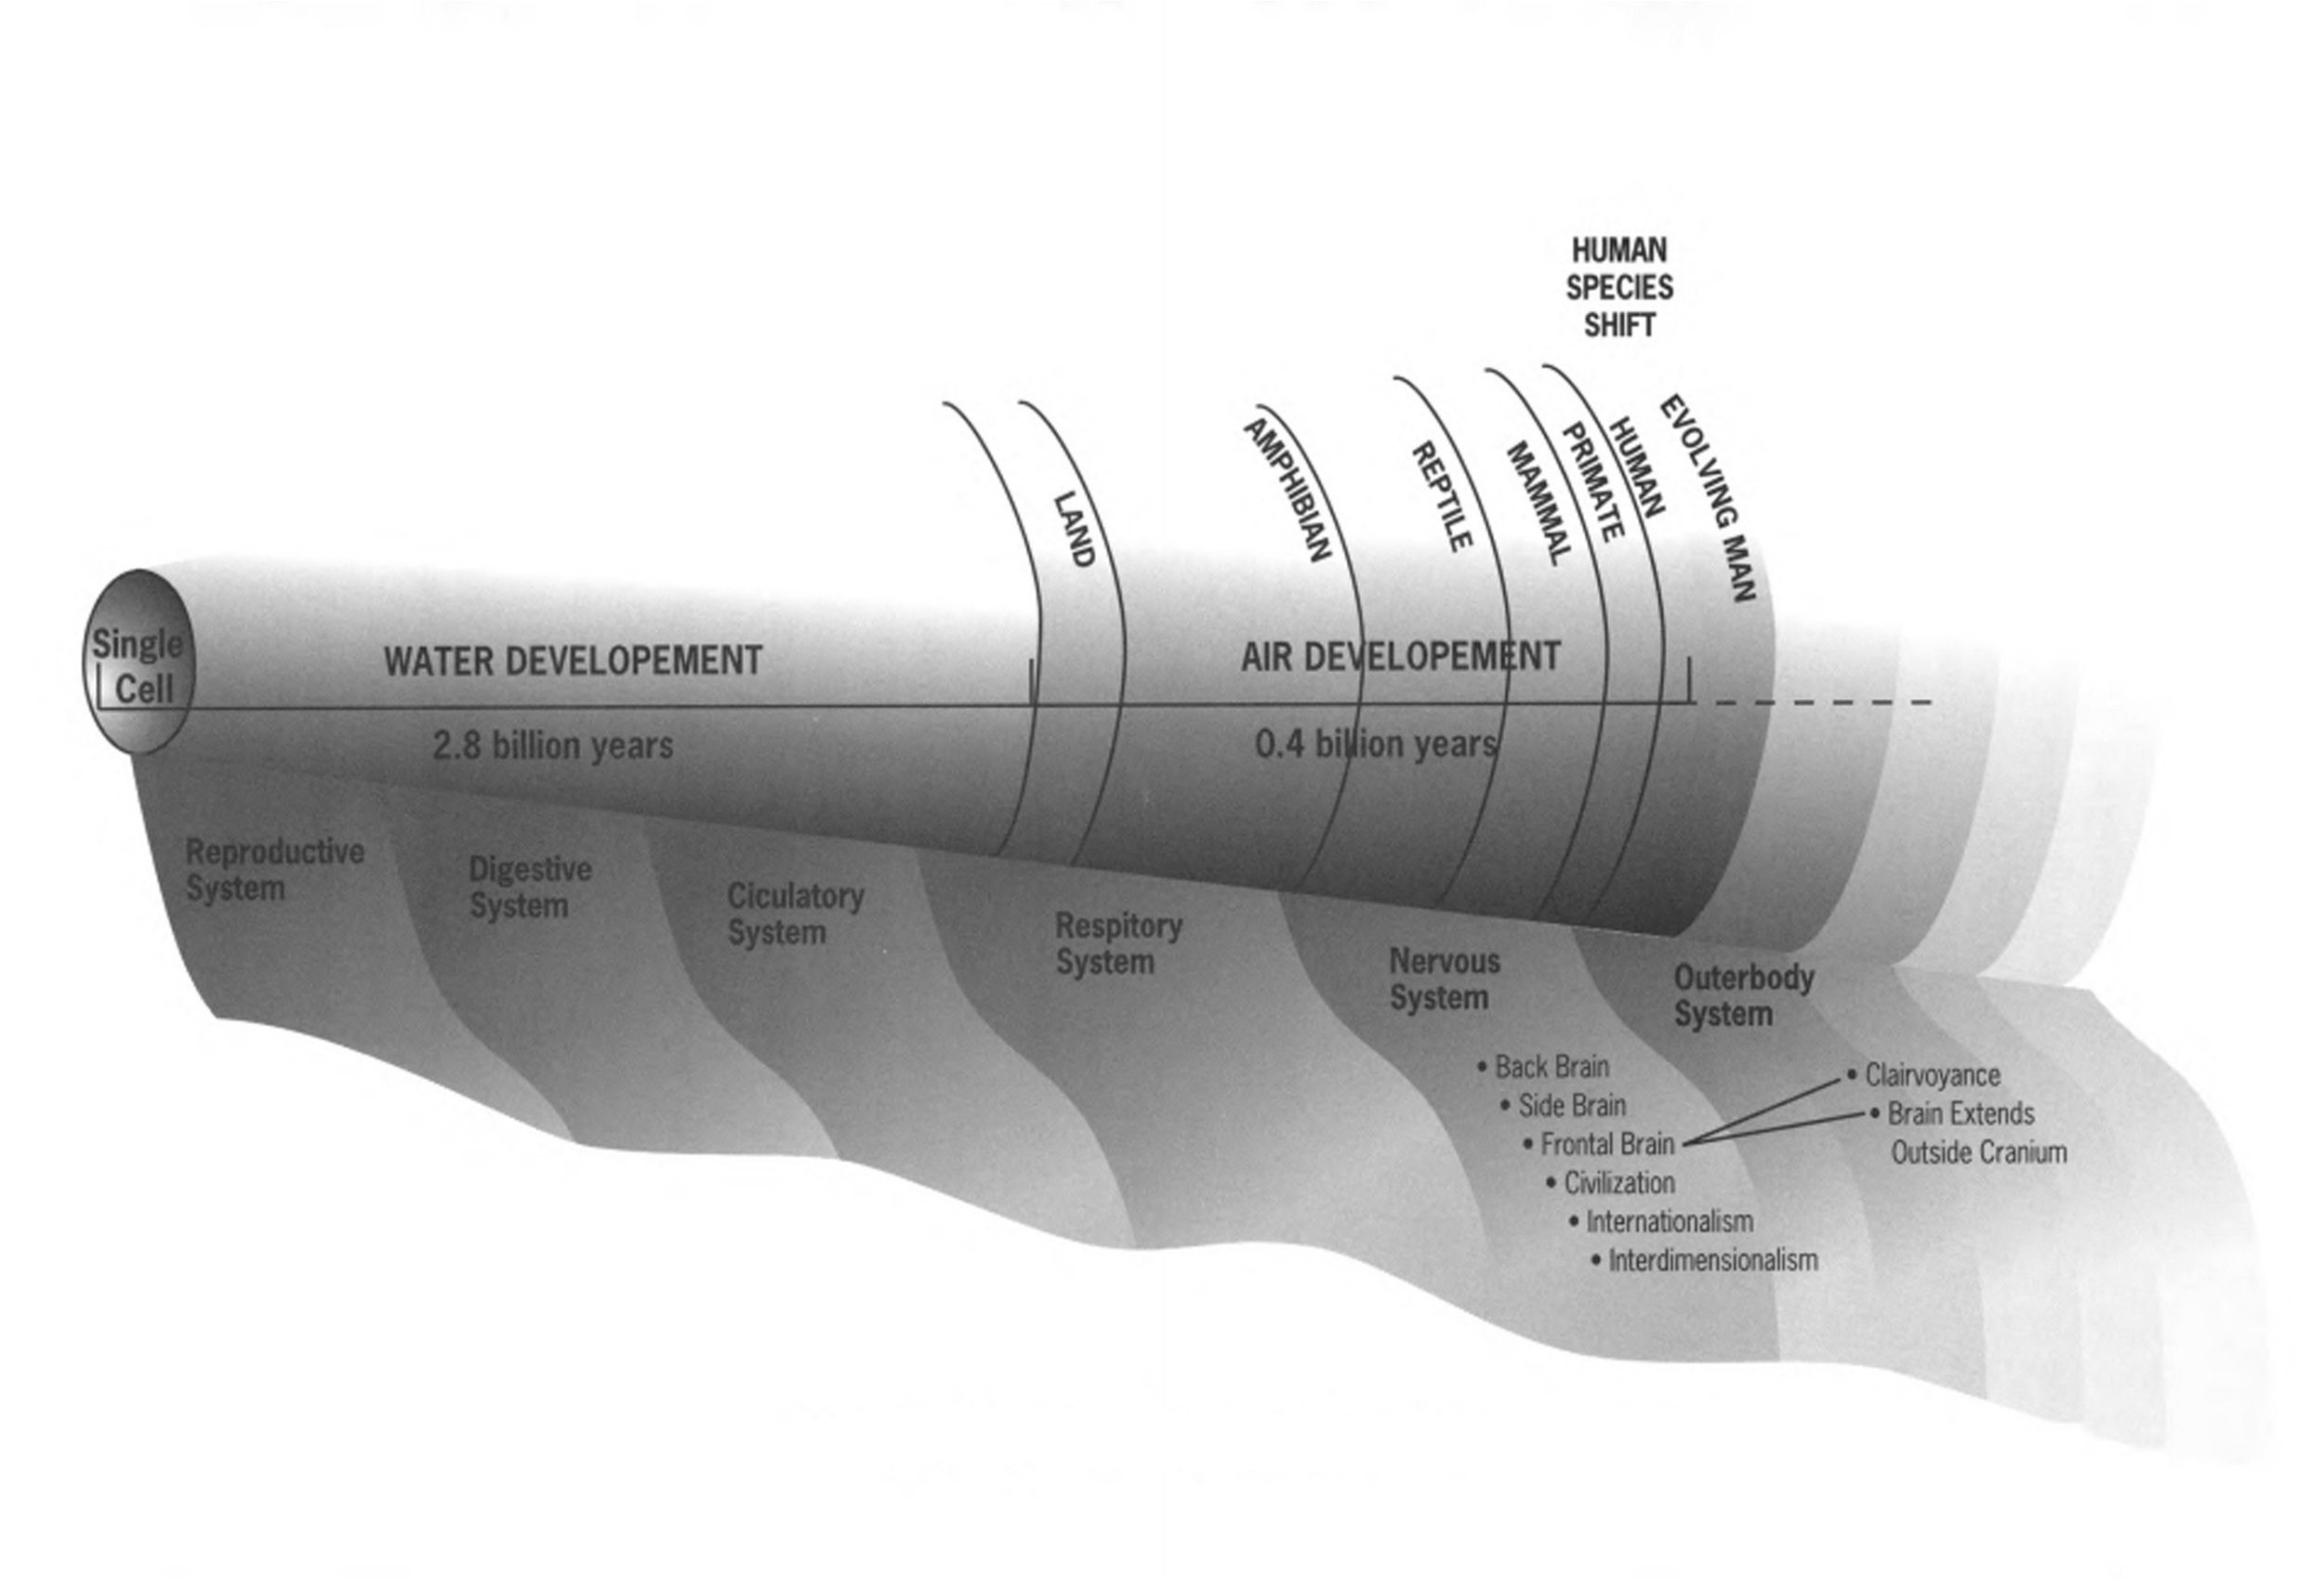 Development of the systems in evolution; the outerbody is now in a phase of rapid development.